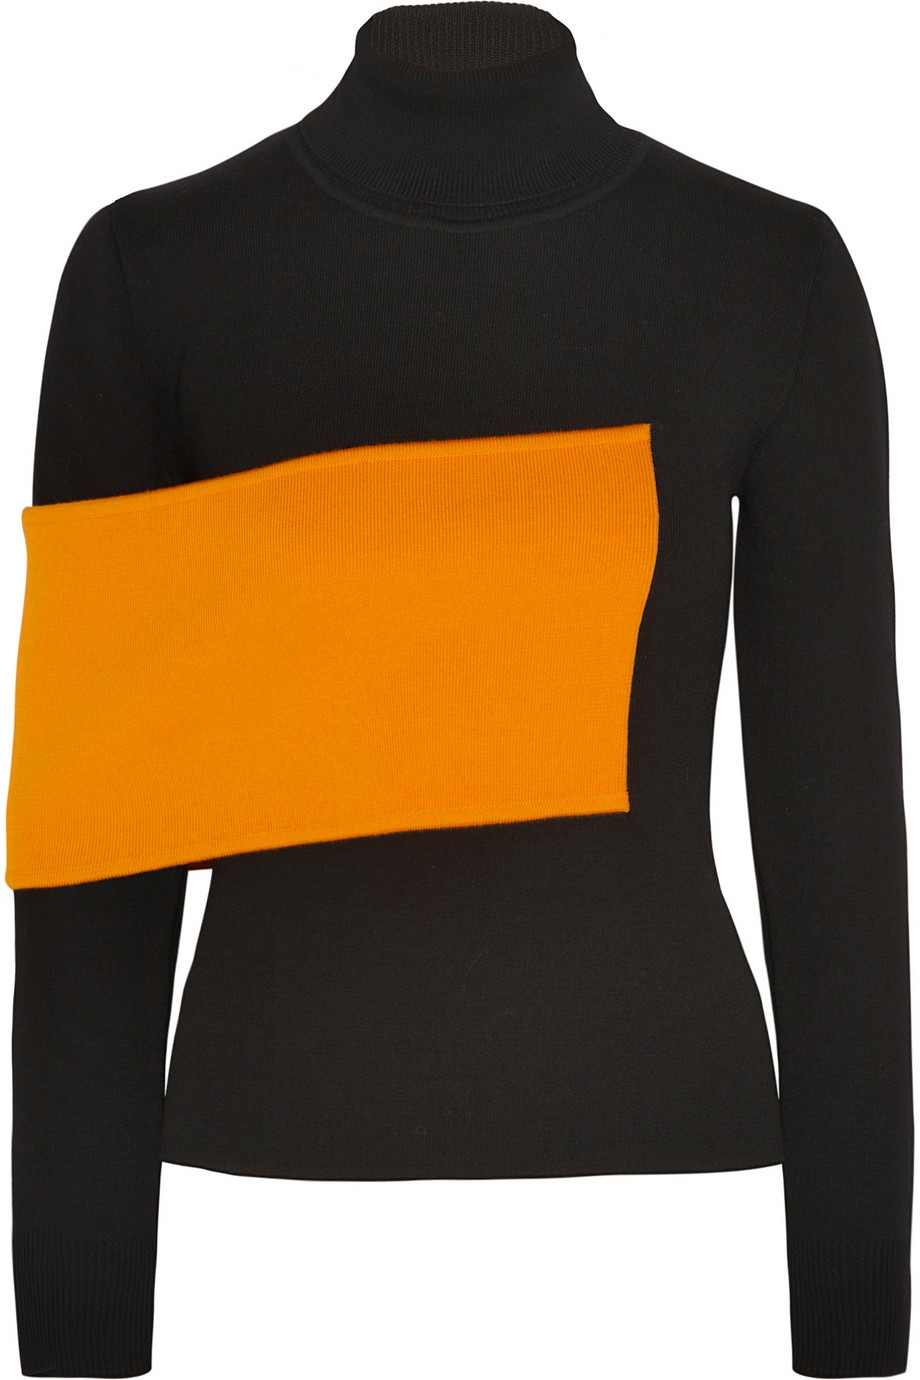 J.W.Anderson   Banded wool-blend turtleneck sweater   NET-A-PORTER.COM_files.jpg